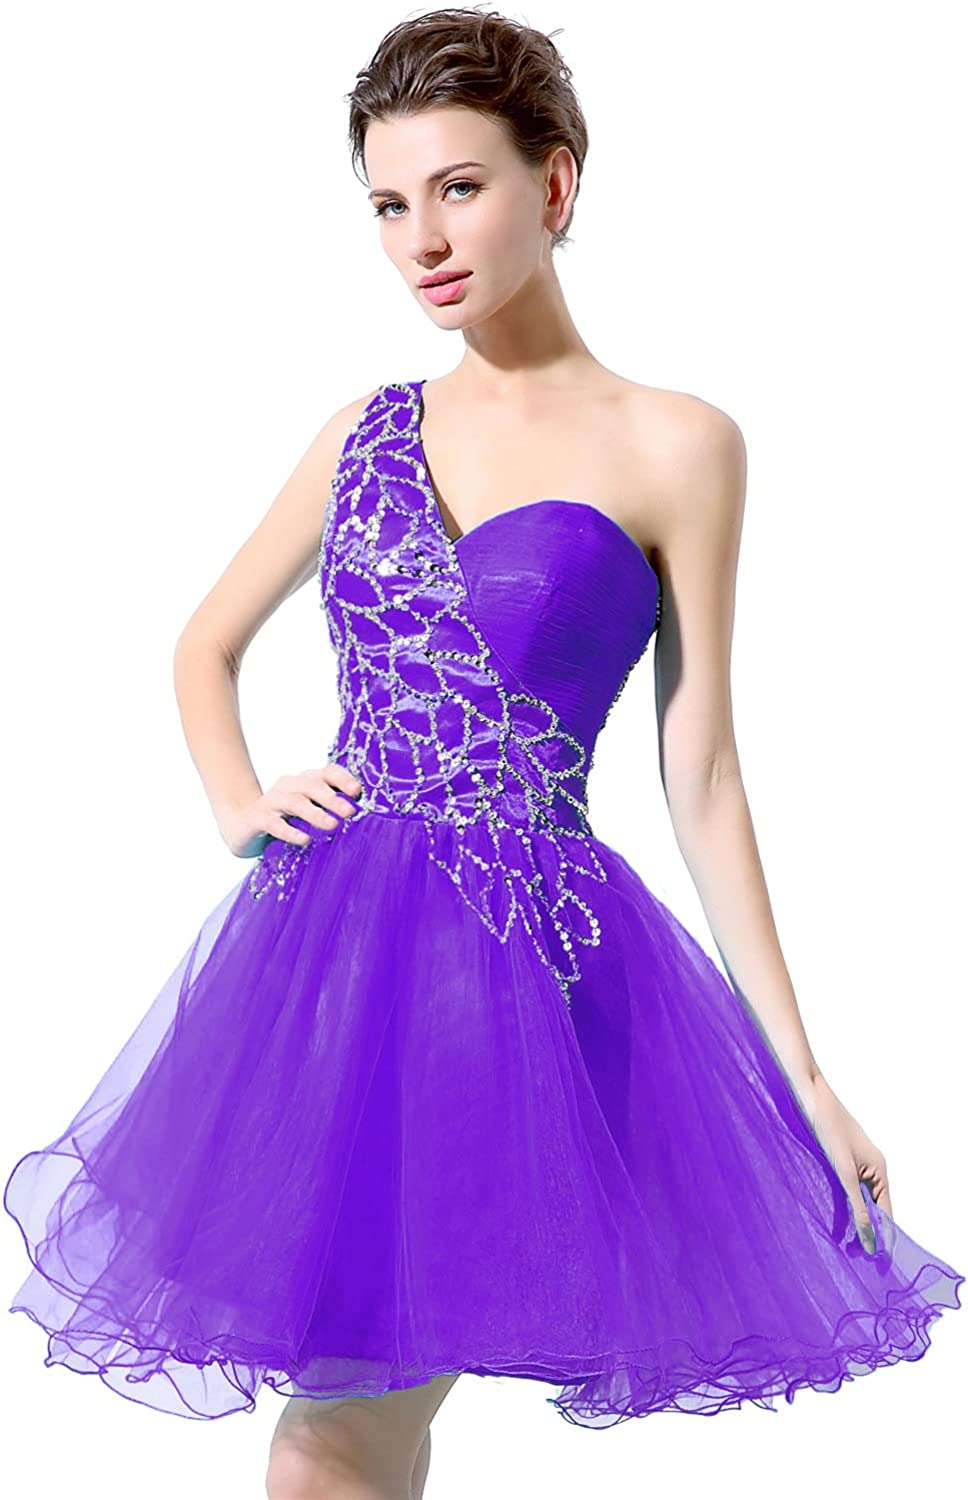 Sarahbridal Juniors One Shoulder Short Prom Dresses Tulle Sequins Homecoming Cocktial Party Gowns